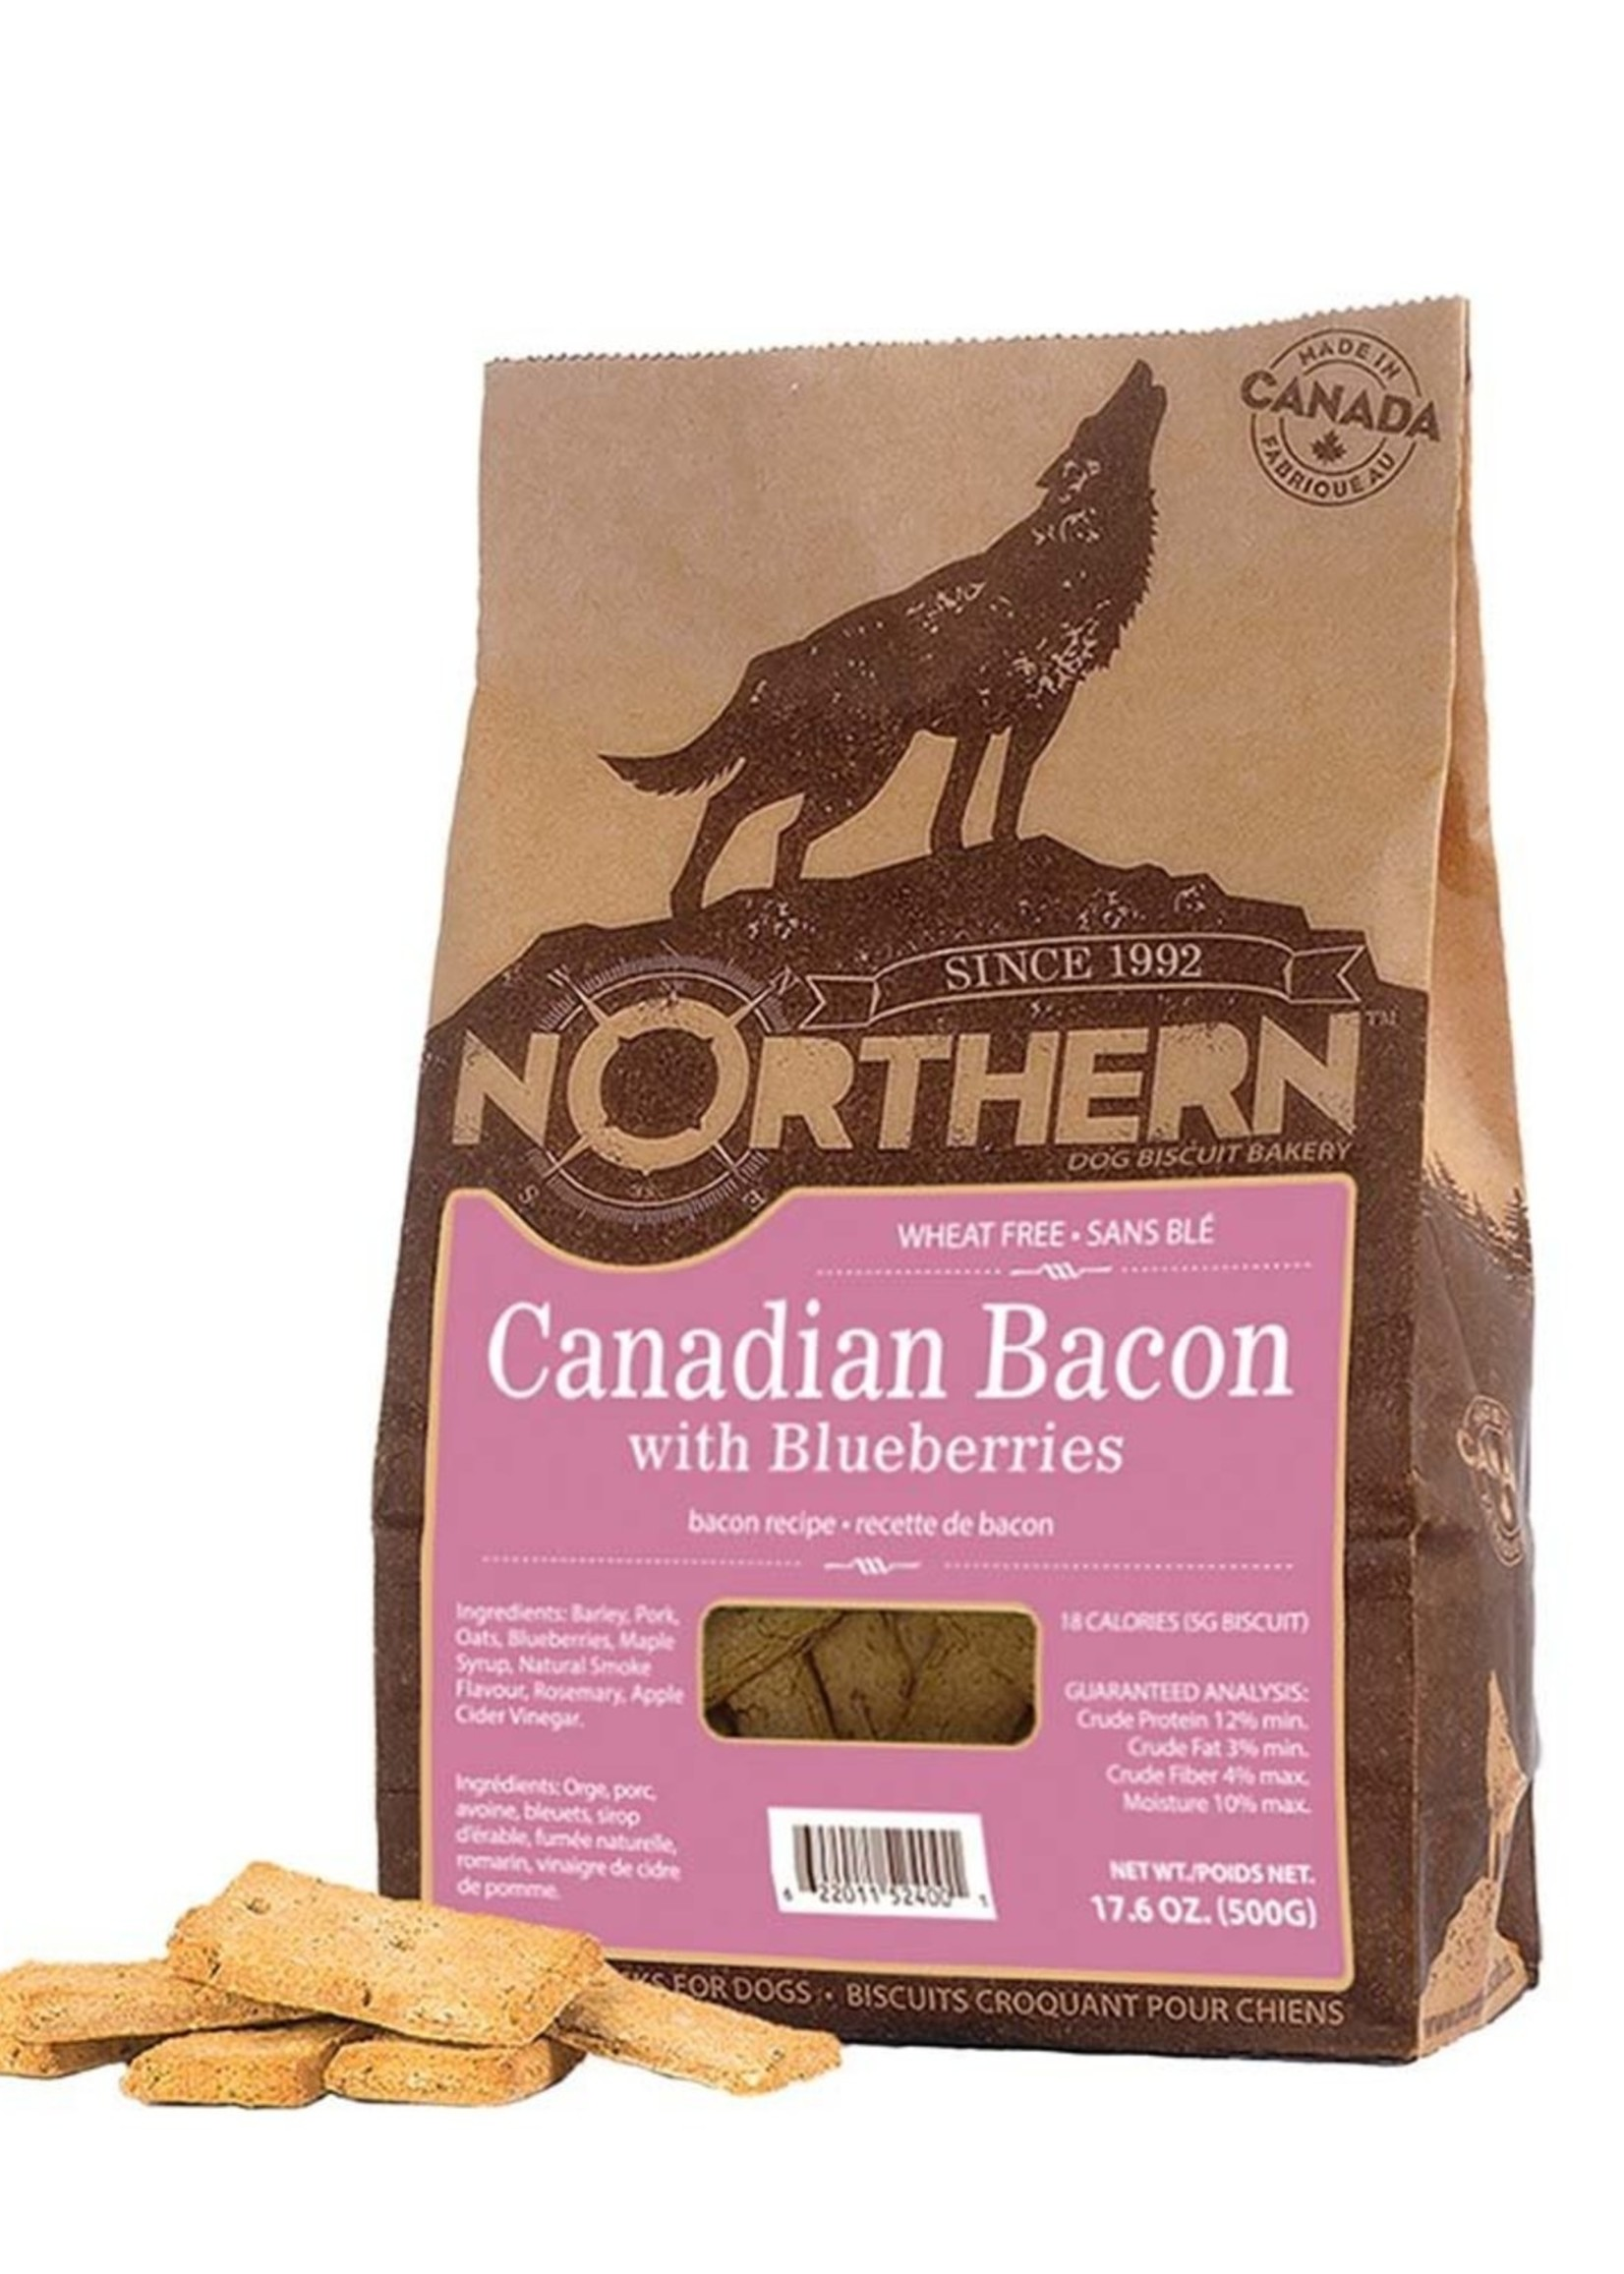 Northern Biscuit Canadian Bacon & Blueberries Box Single 500g